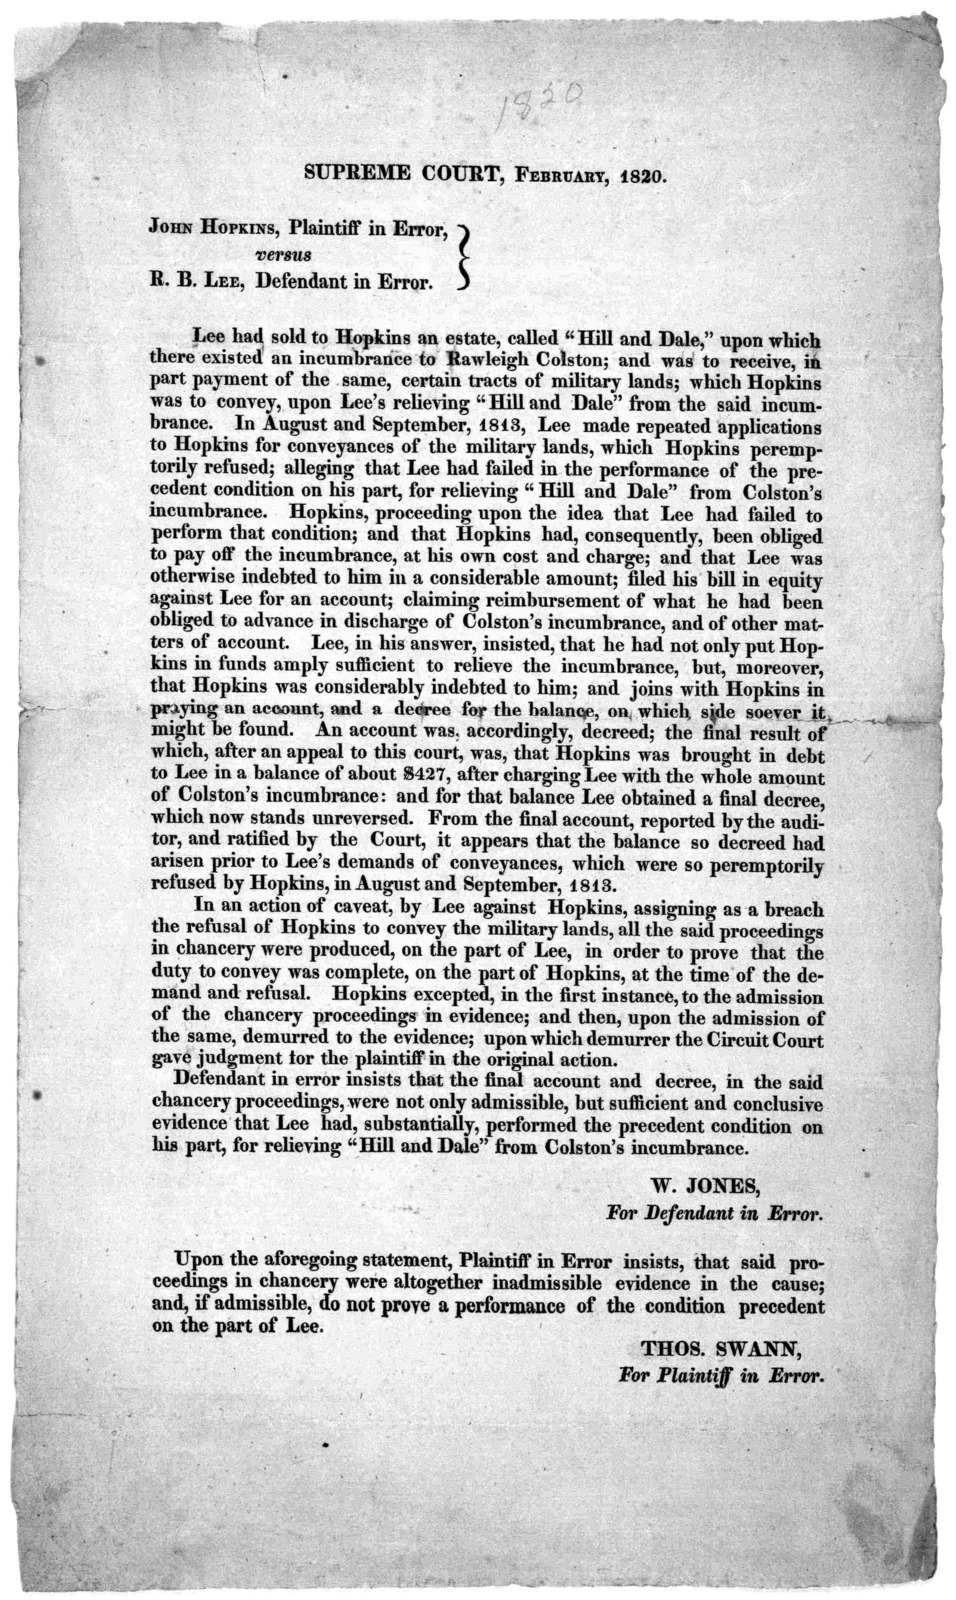 """Supreme court, February, 1820. John Hopkins. Plaintiff in error, versus R. B. Lee, defendant in error. Lee had sold to Hopkins an estate called """"Hill and Dale,"""" upon which there existed an incumbrance to Rawleigh Colston ... [Washington, D. C. 1"""